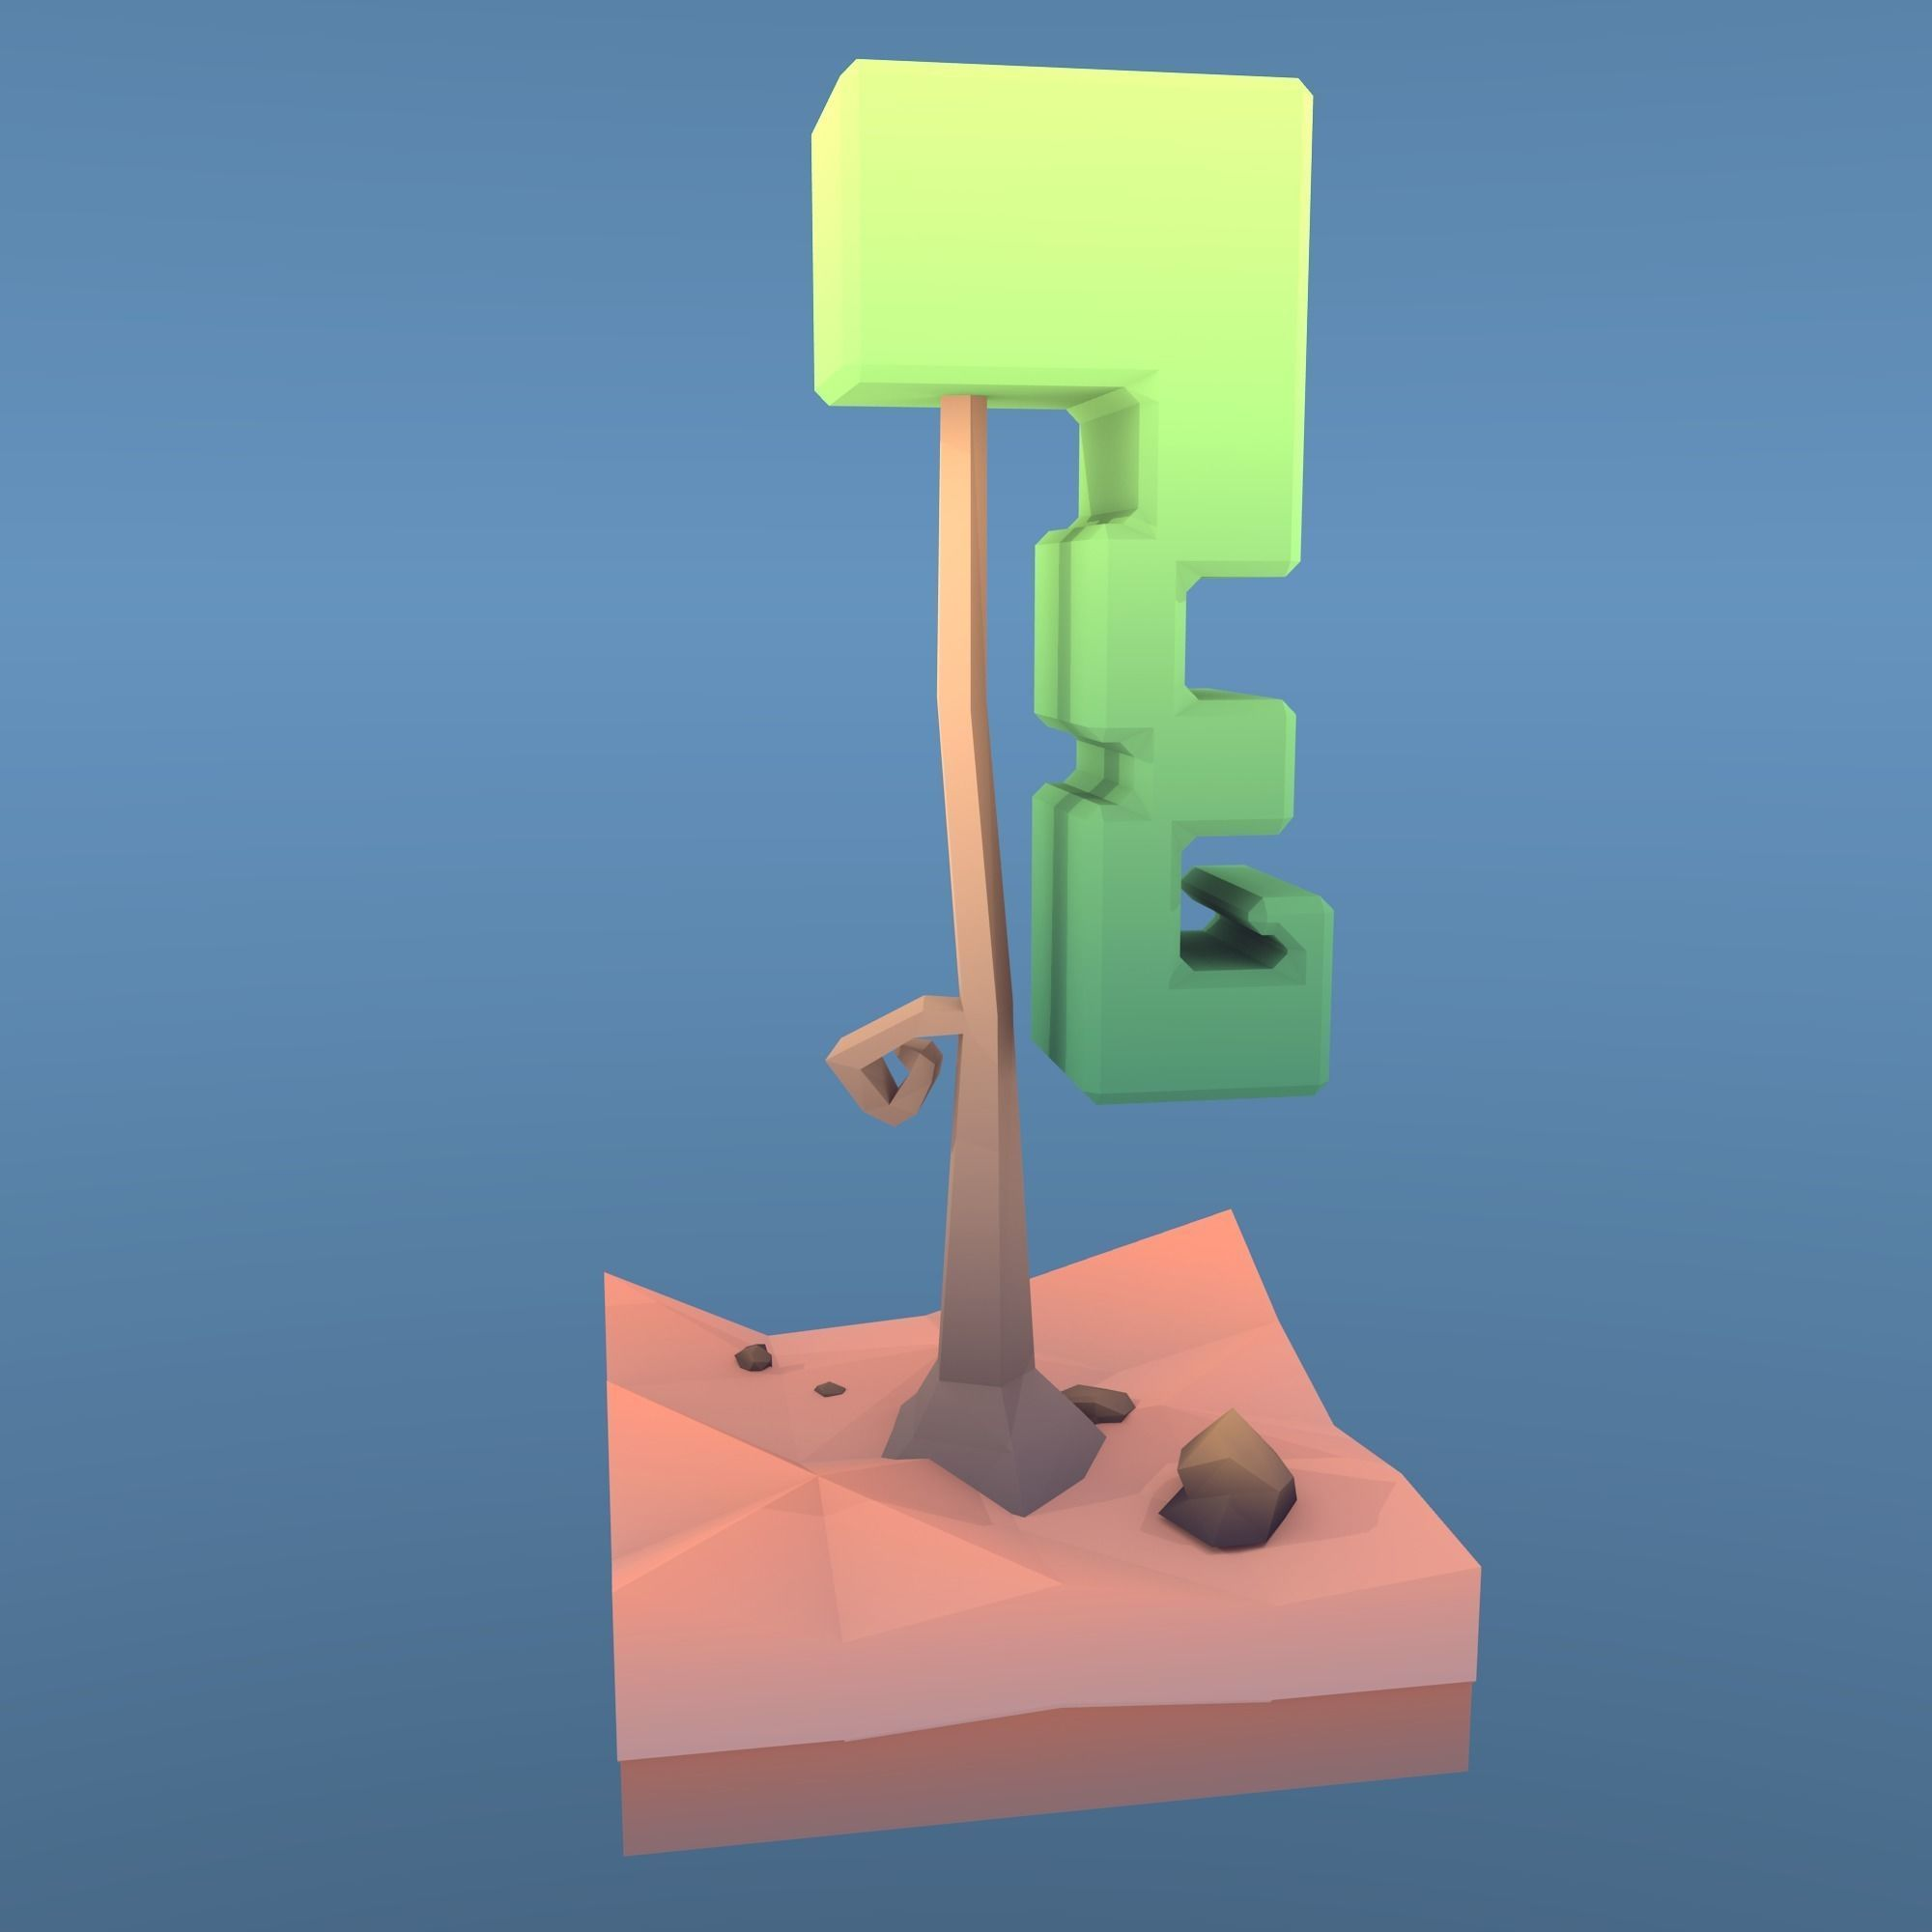 Low Poly Tree - The Curly Tree